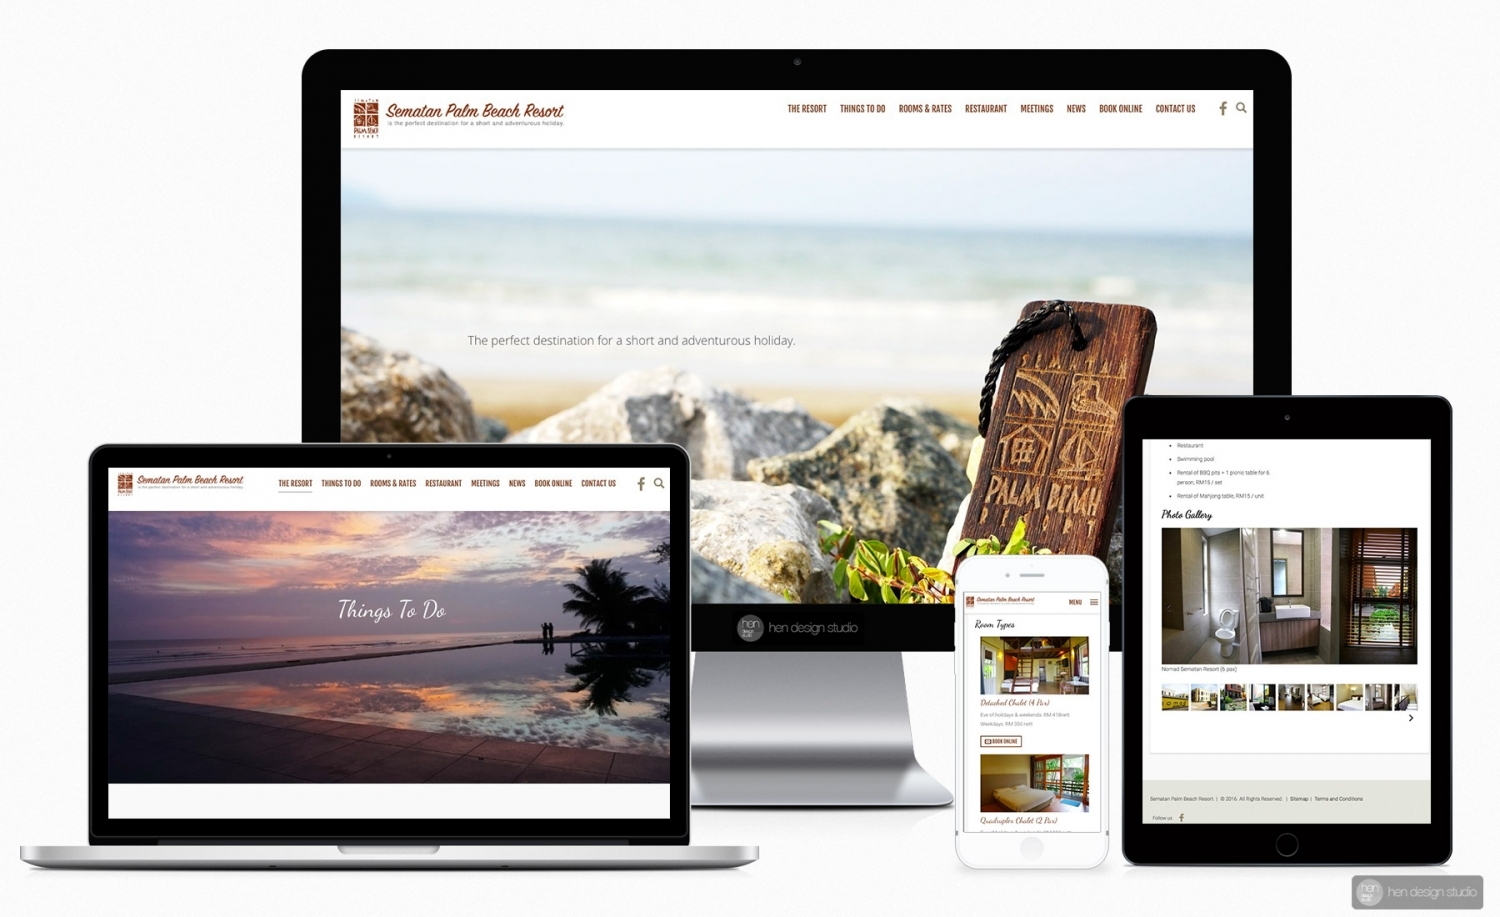 Sematan Palm Beach Resort Official Website upgrade and revise